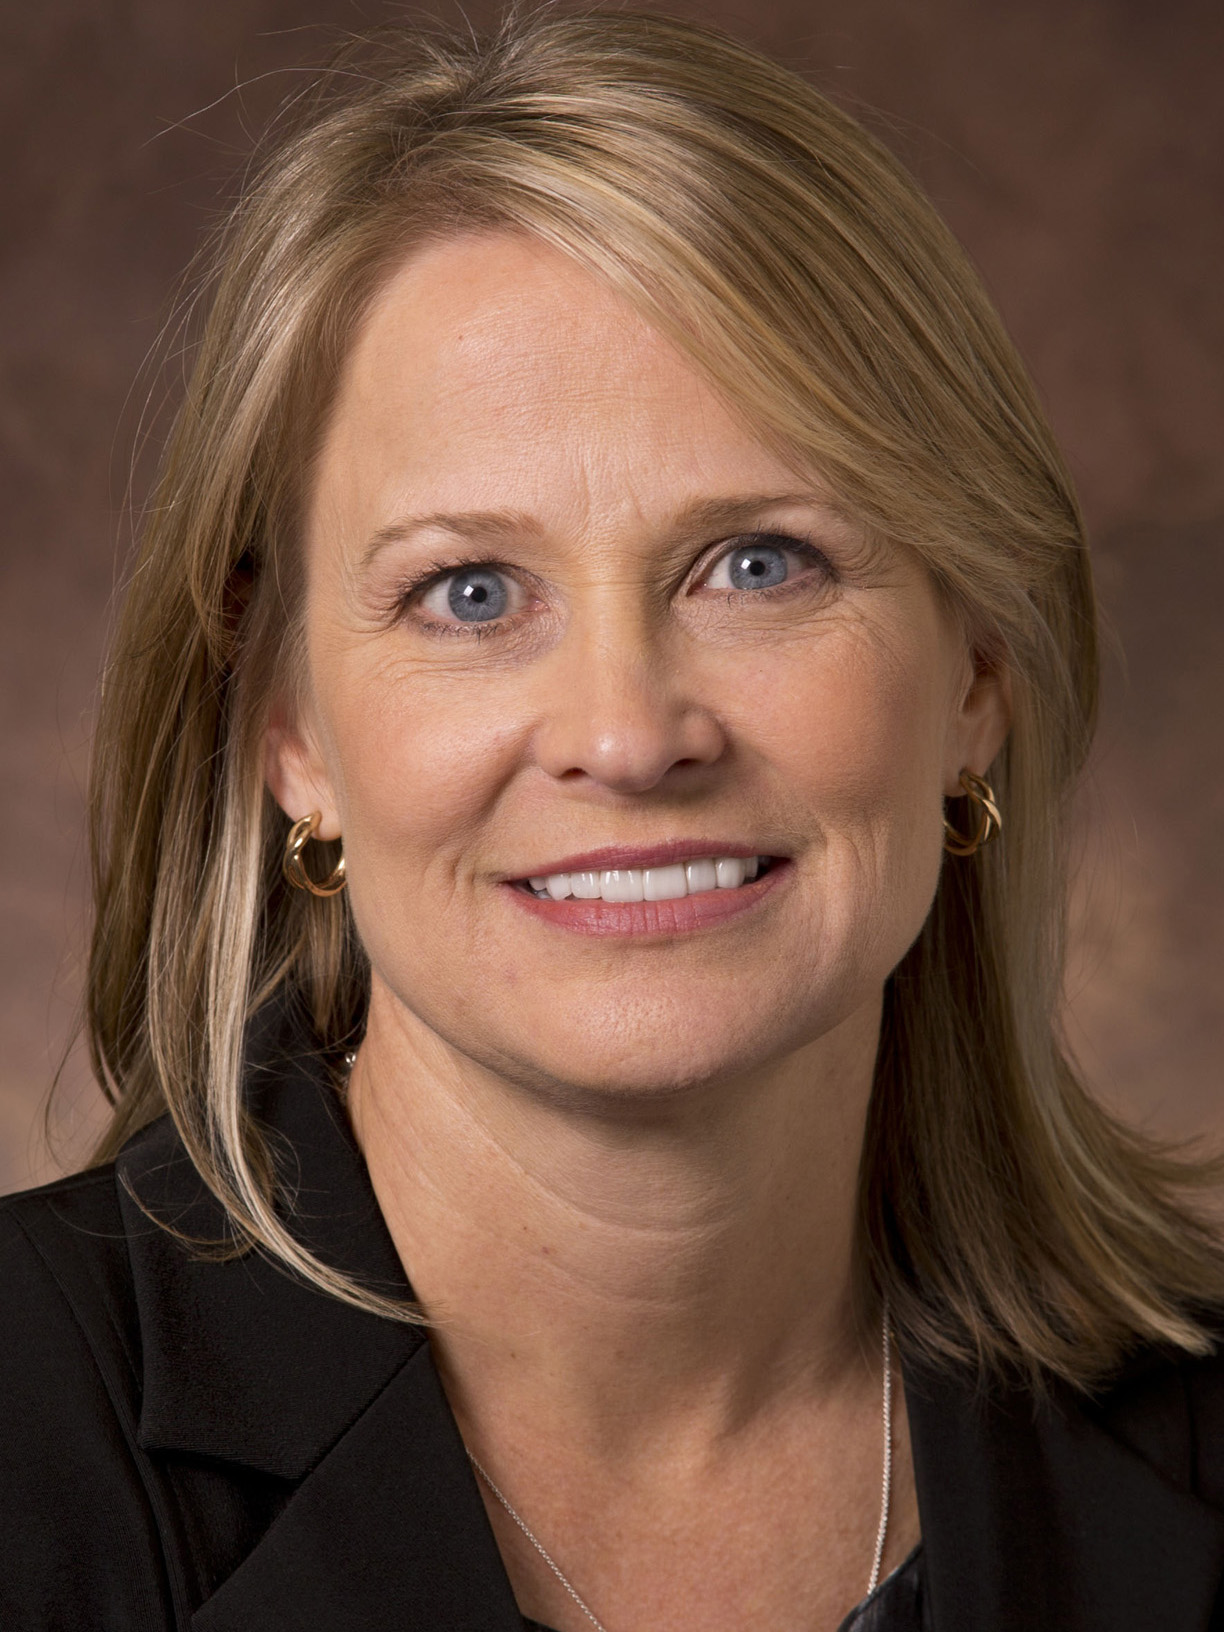 Kelly Harbert '86, Bloomington, IL